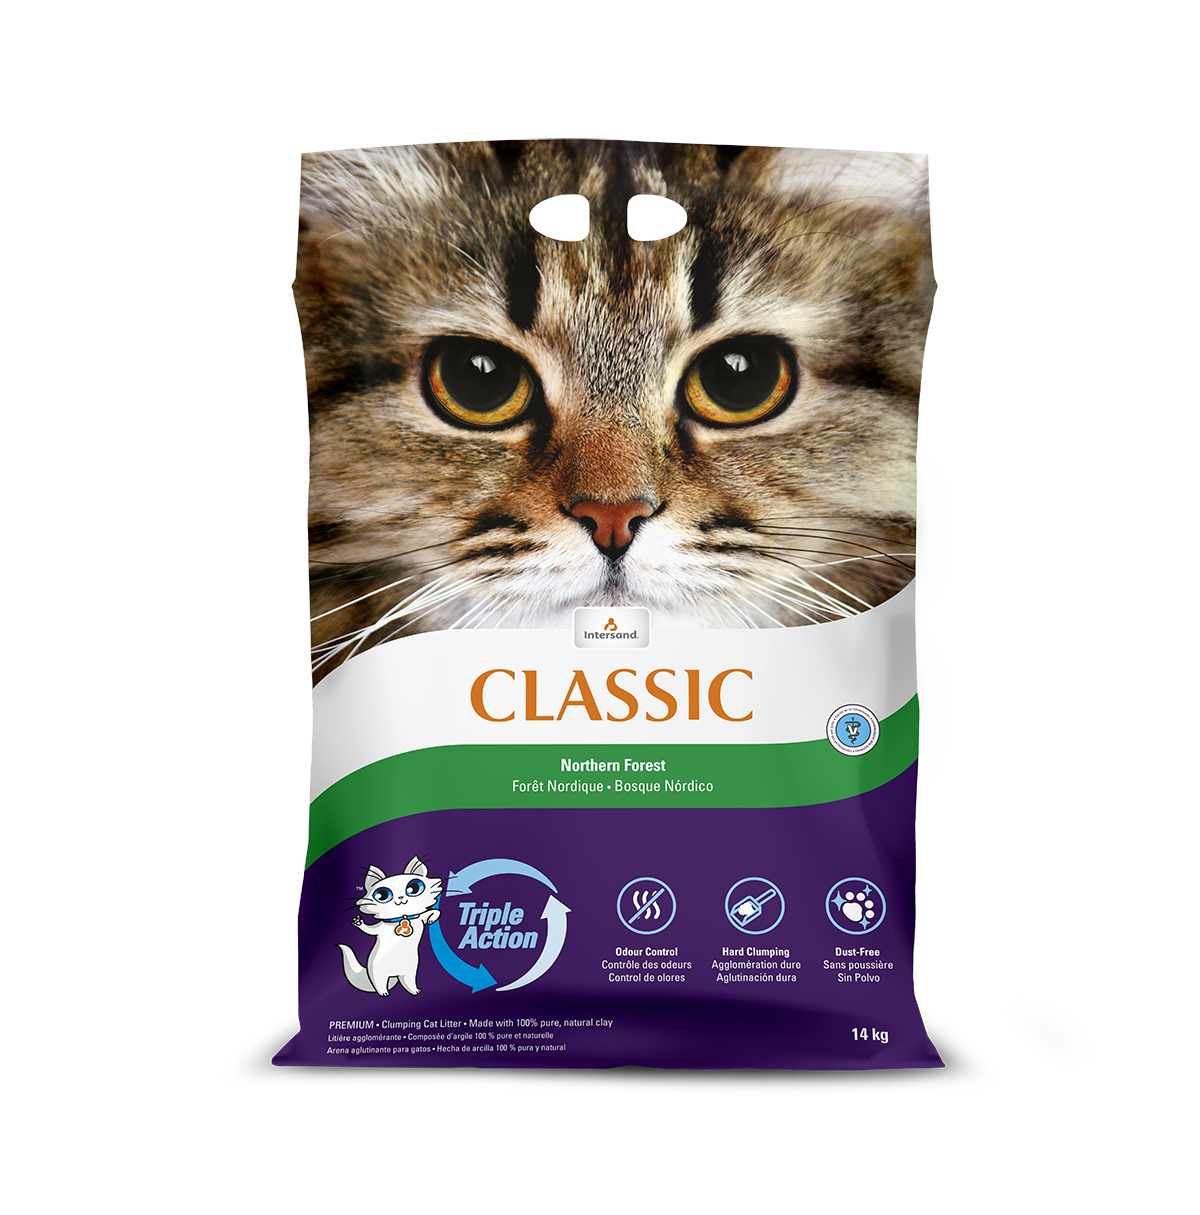 Intersand Classic Norwegian Forest 14kg Front of Pack